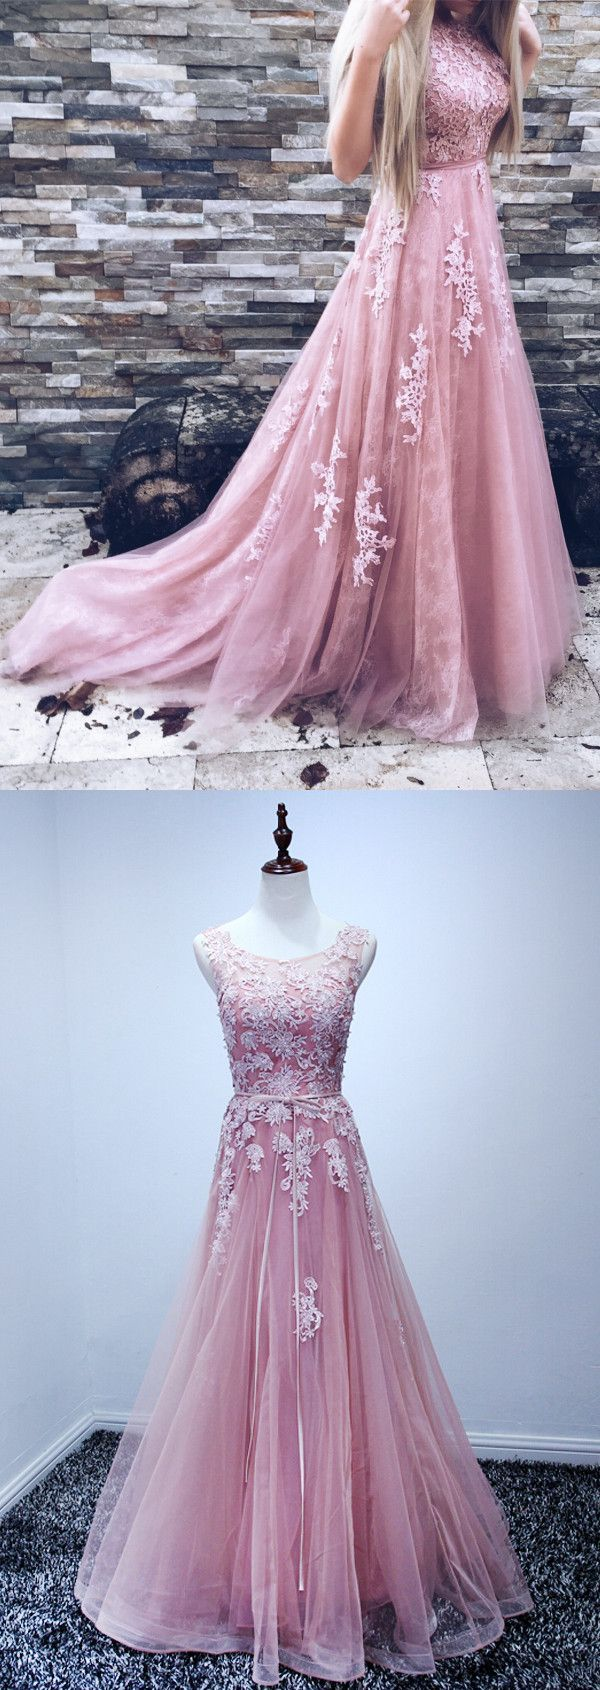 Prom dresses pink party dresses with appliquespink laceup